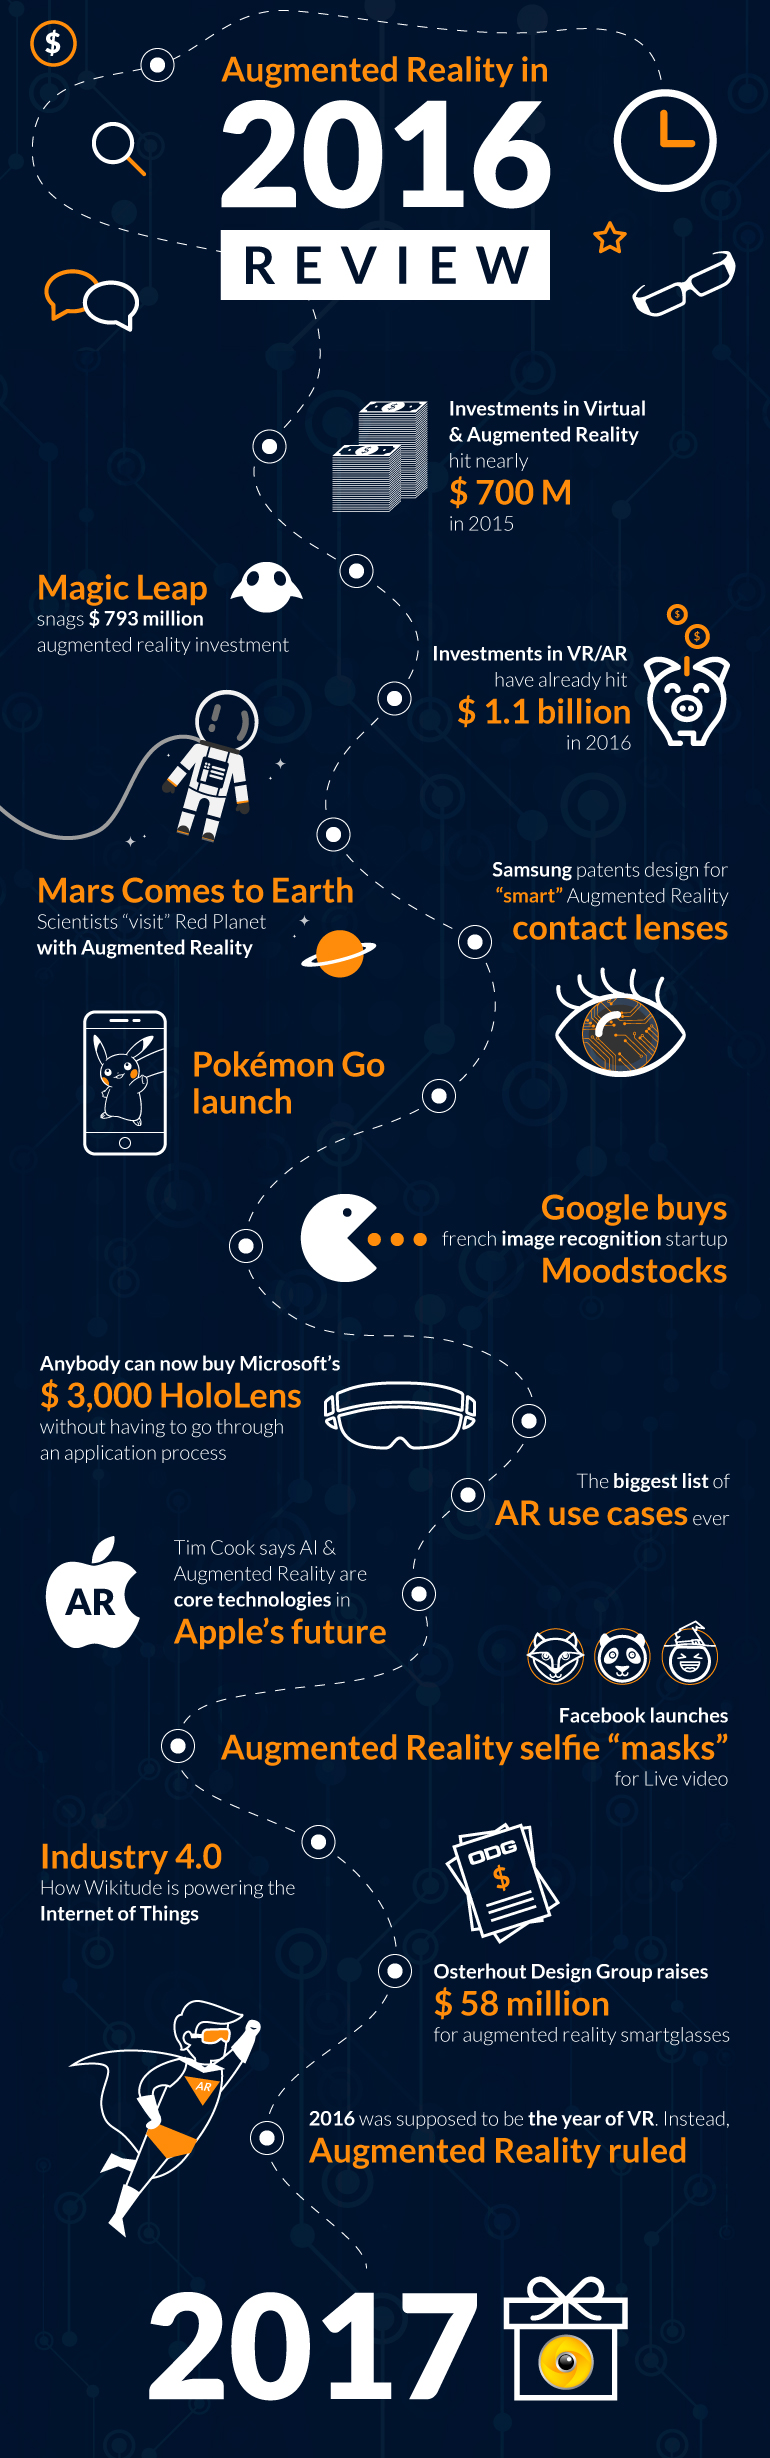 visual infographic showing the main events in AR in 2016 starting from Investments in VR and ar of nearly $700 up to ODG raising $58 million